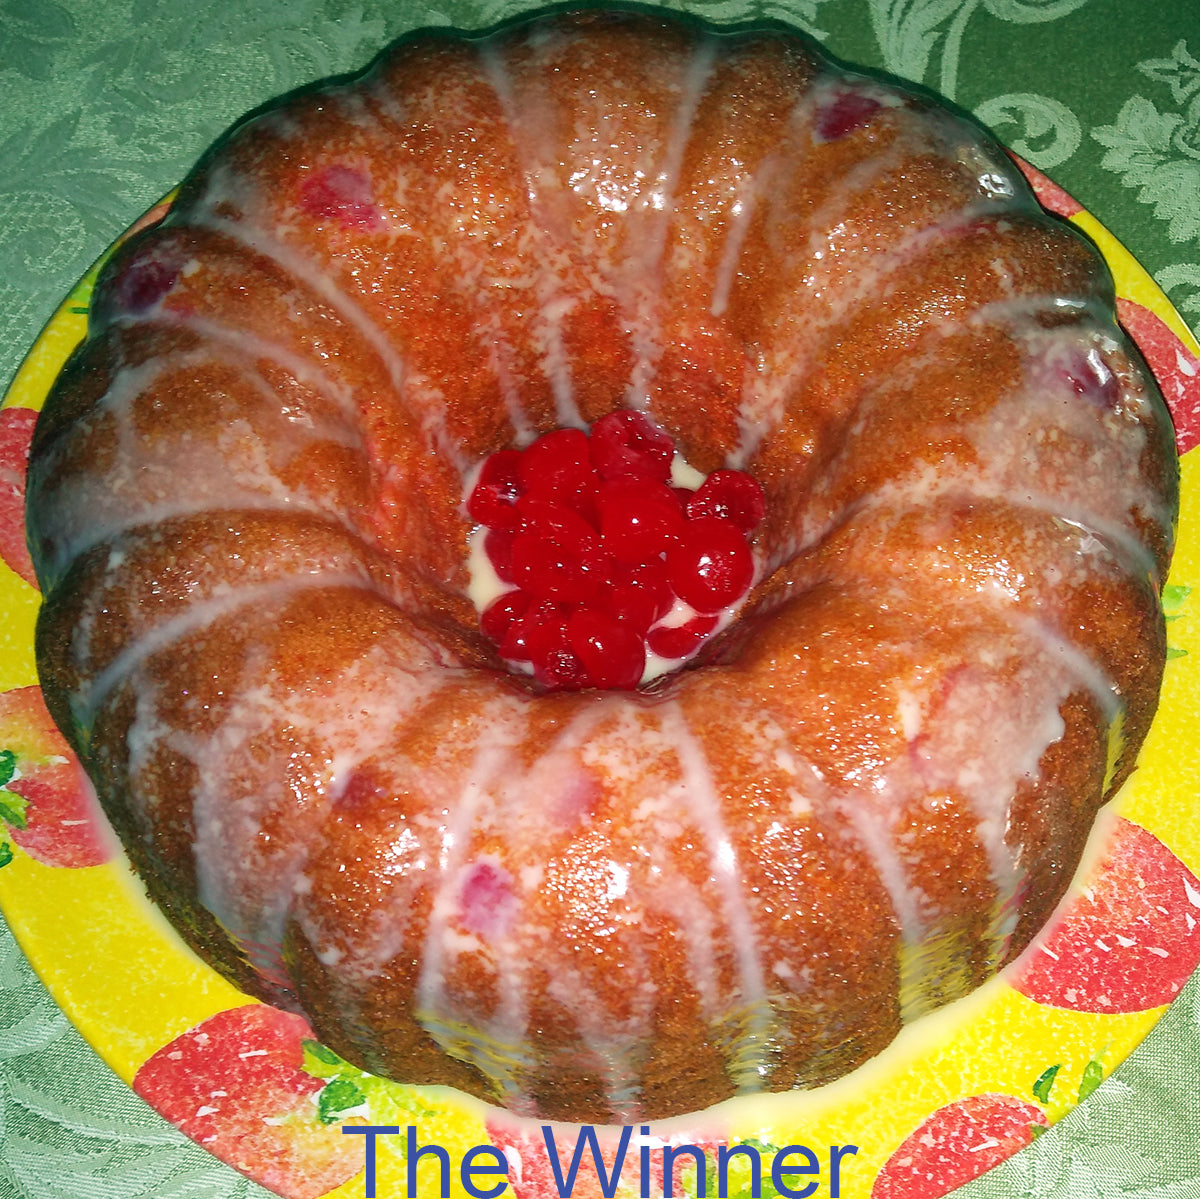 Bundt Cake for Valentine's Day